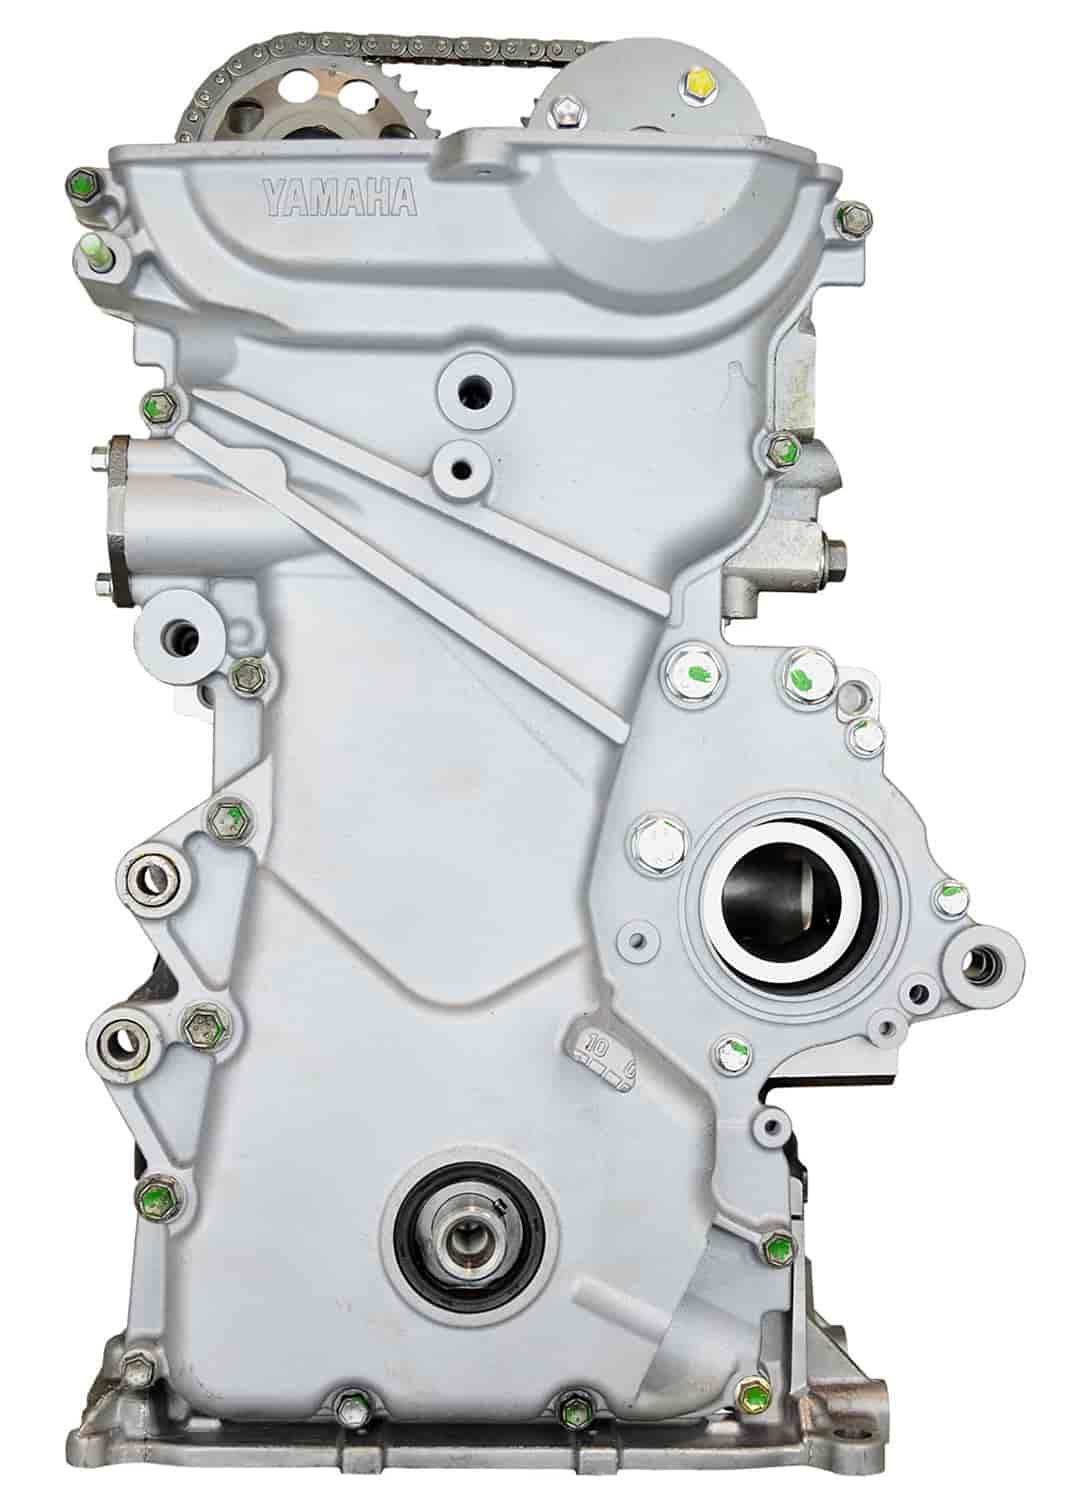 ATK Engines Remanufactured Crate Engine for 2003-2006 Toyota Celica,  Corolla, & Matrix with 1 8L L4 2ZZGE